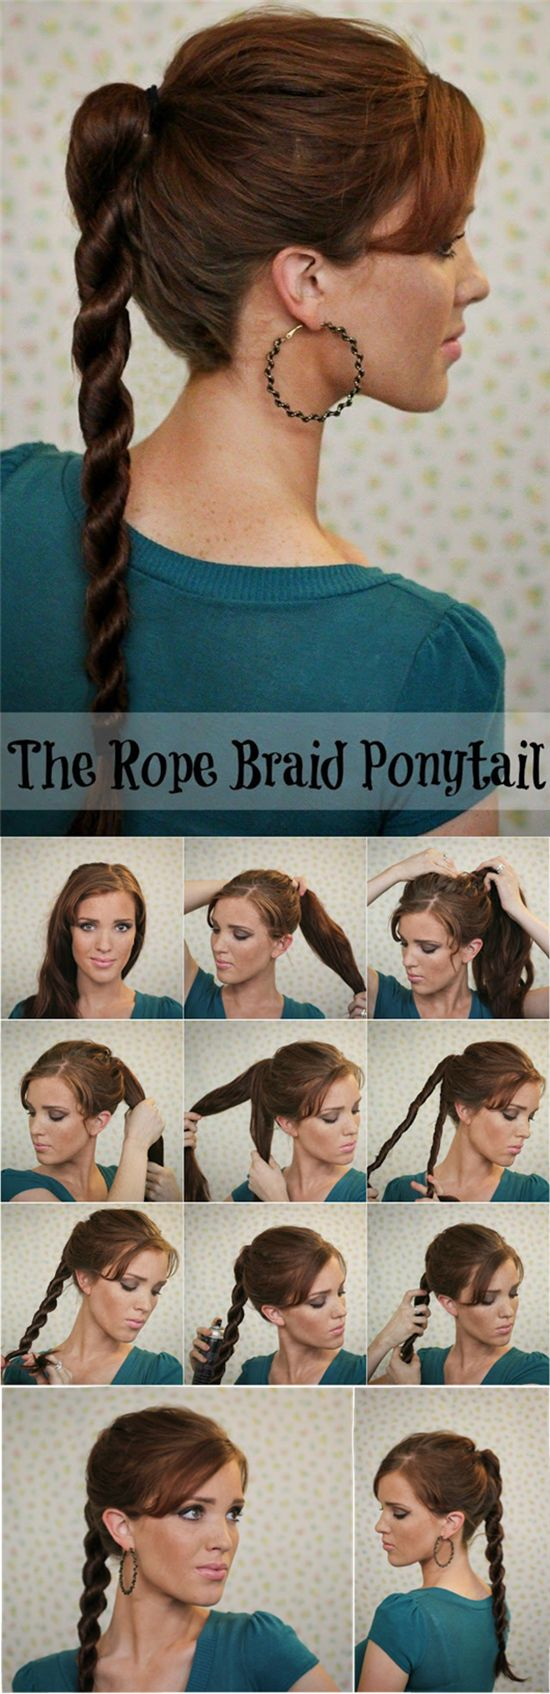 one minute basic ponytail hairstyles tutorial for daily style